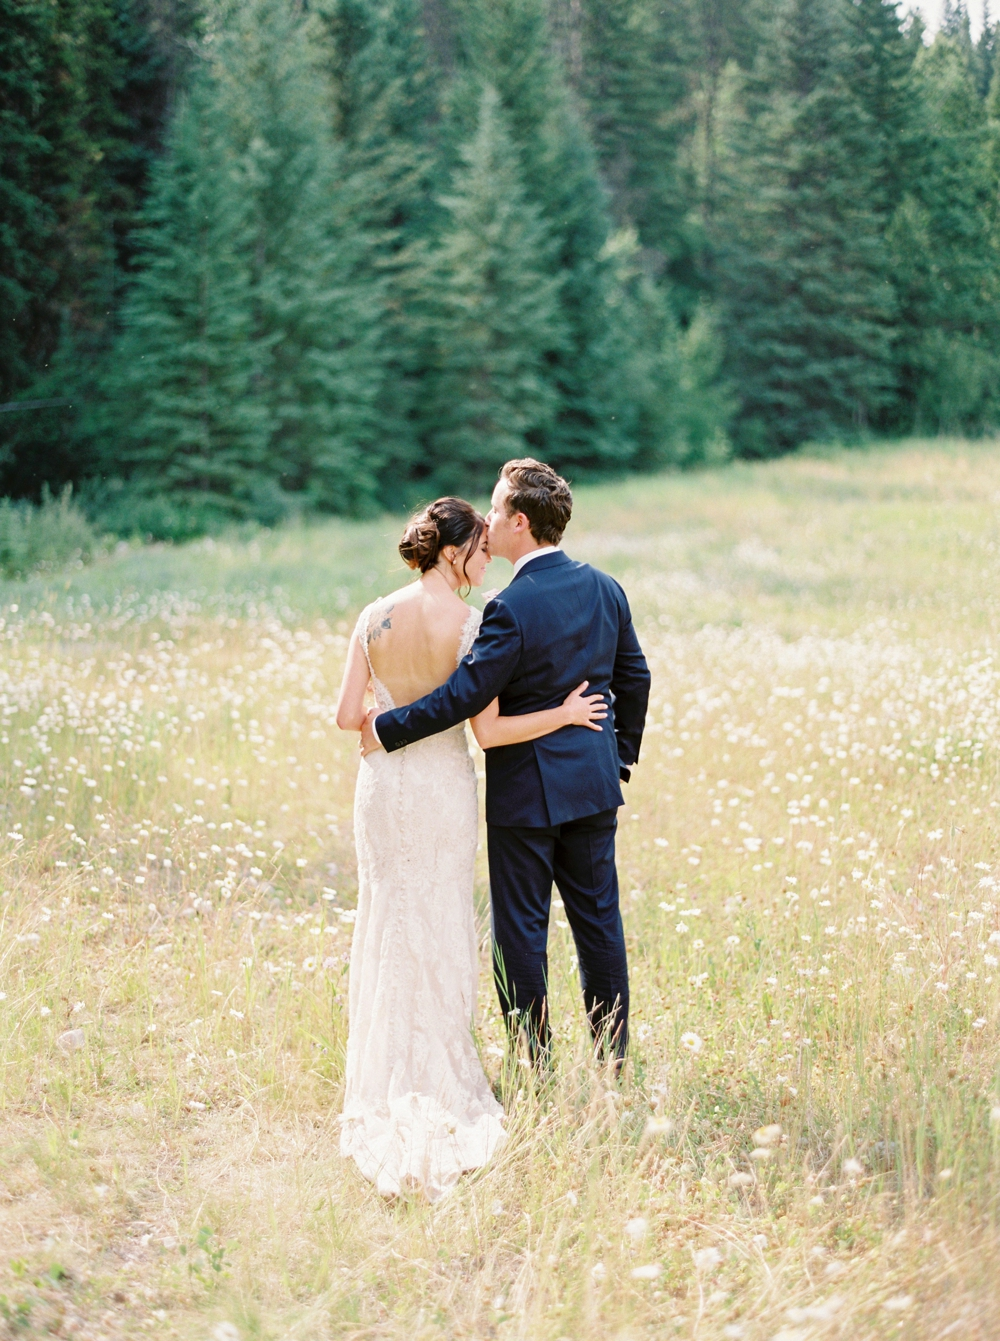 bride and groom photos | Banff springs wedding photographers | fairmont banff rocky mountain wedding | Justine Milton fine art film Photography